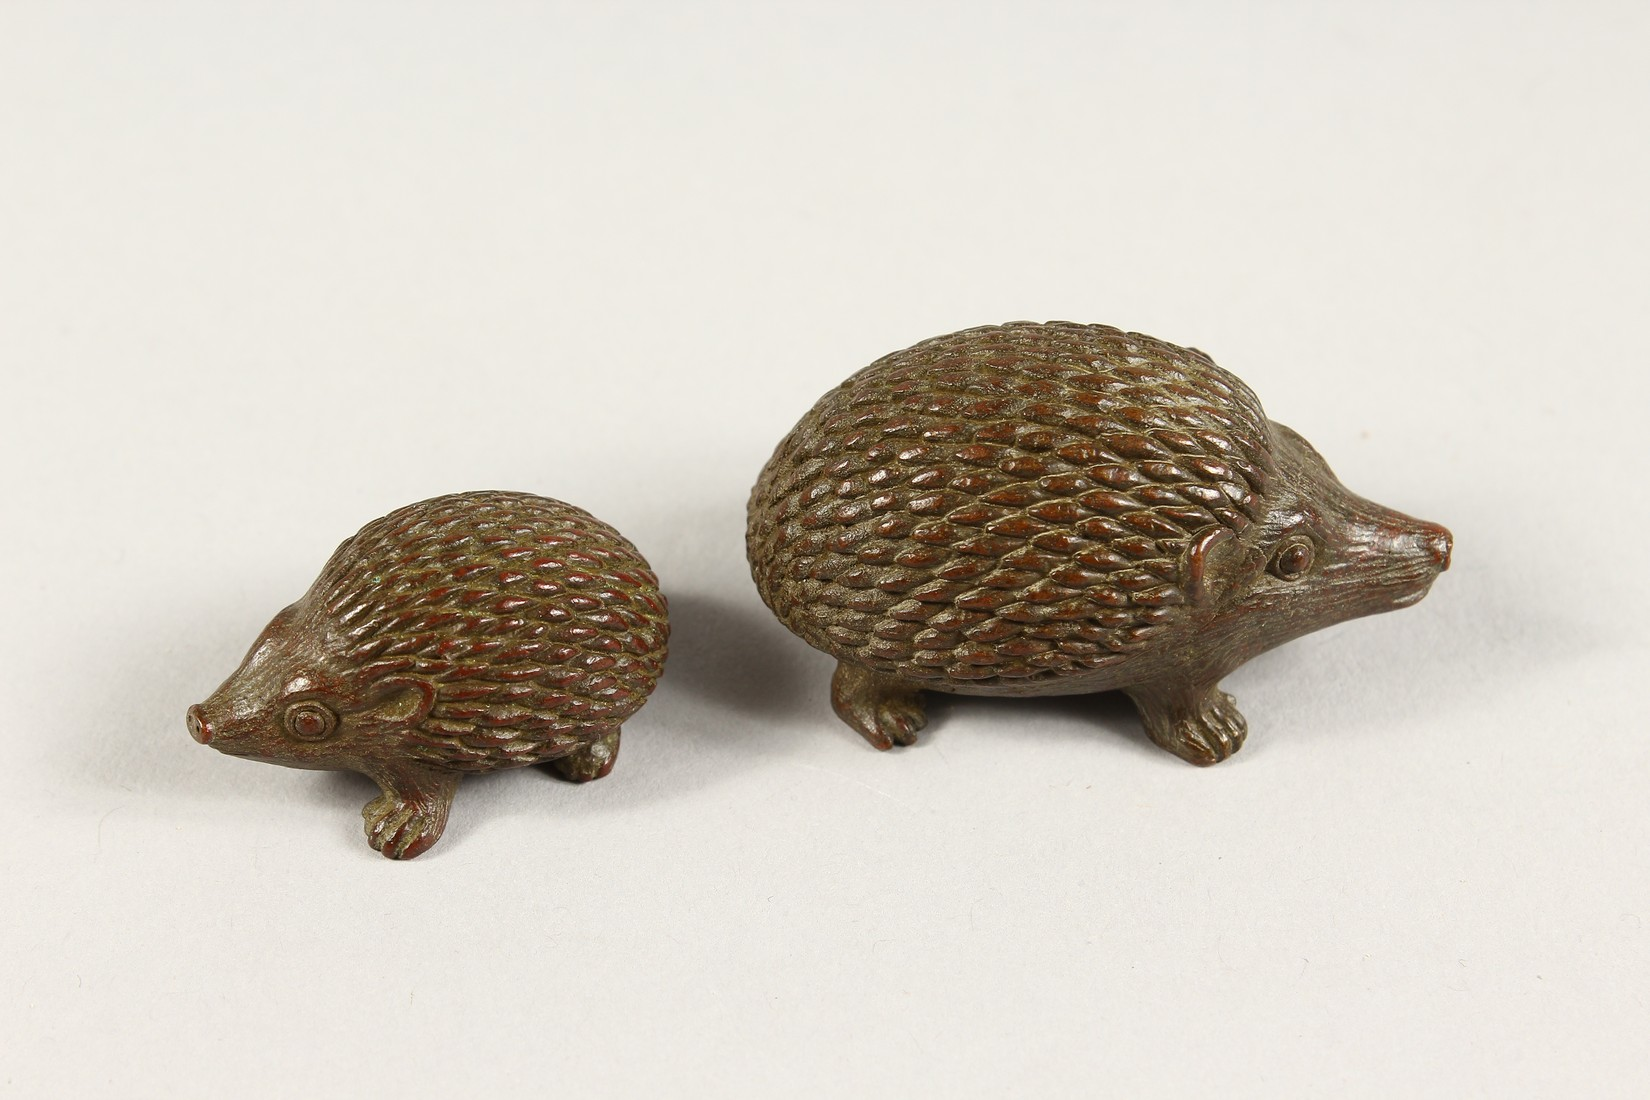 TWO JAPANESE BBRONZE HEDGEHOGS 2ins & 1.5ins long - Image 3 of 4